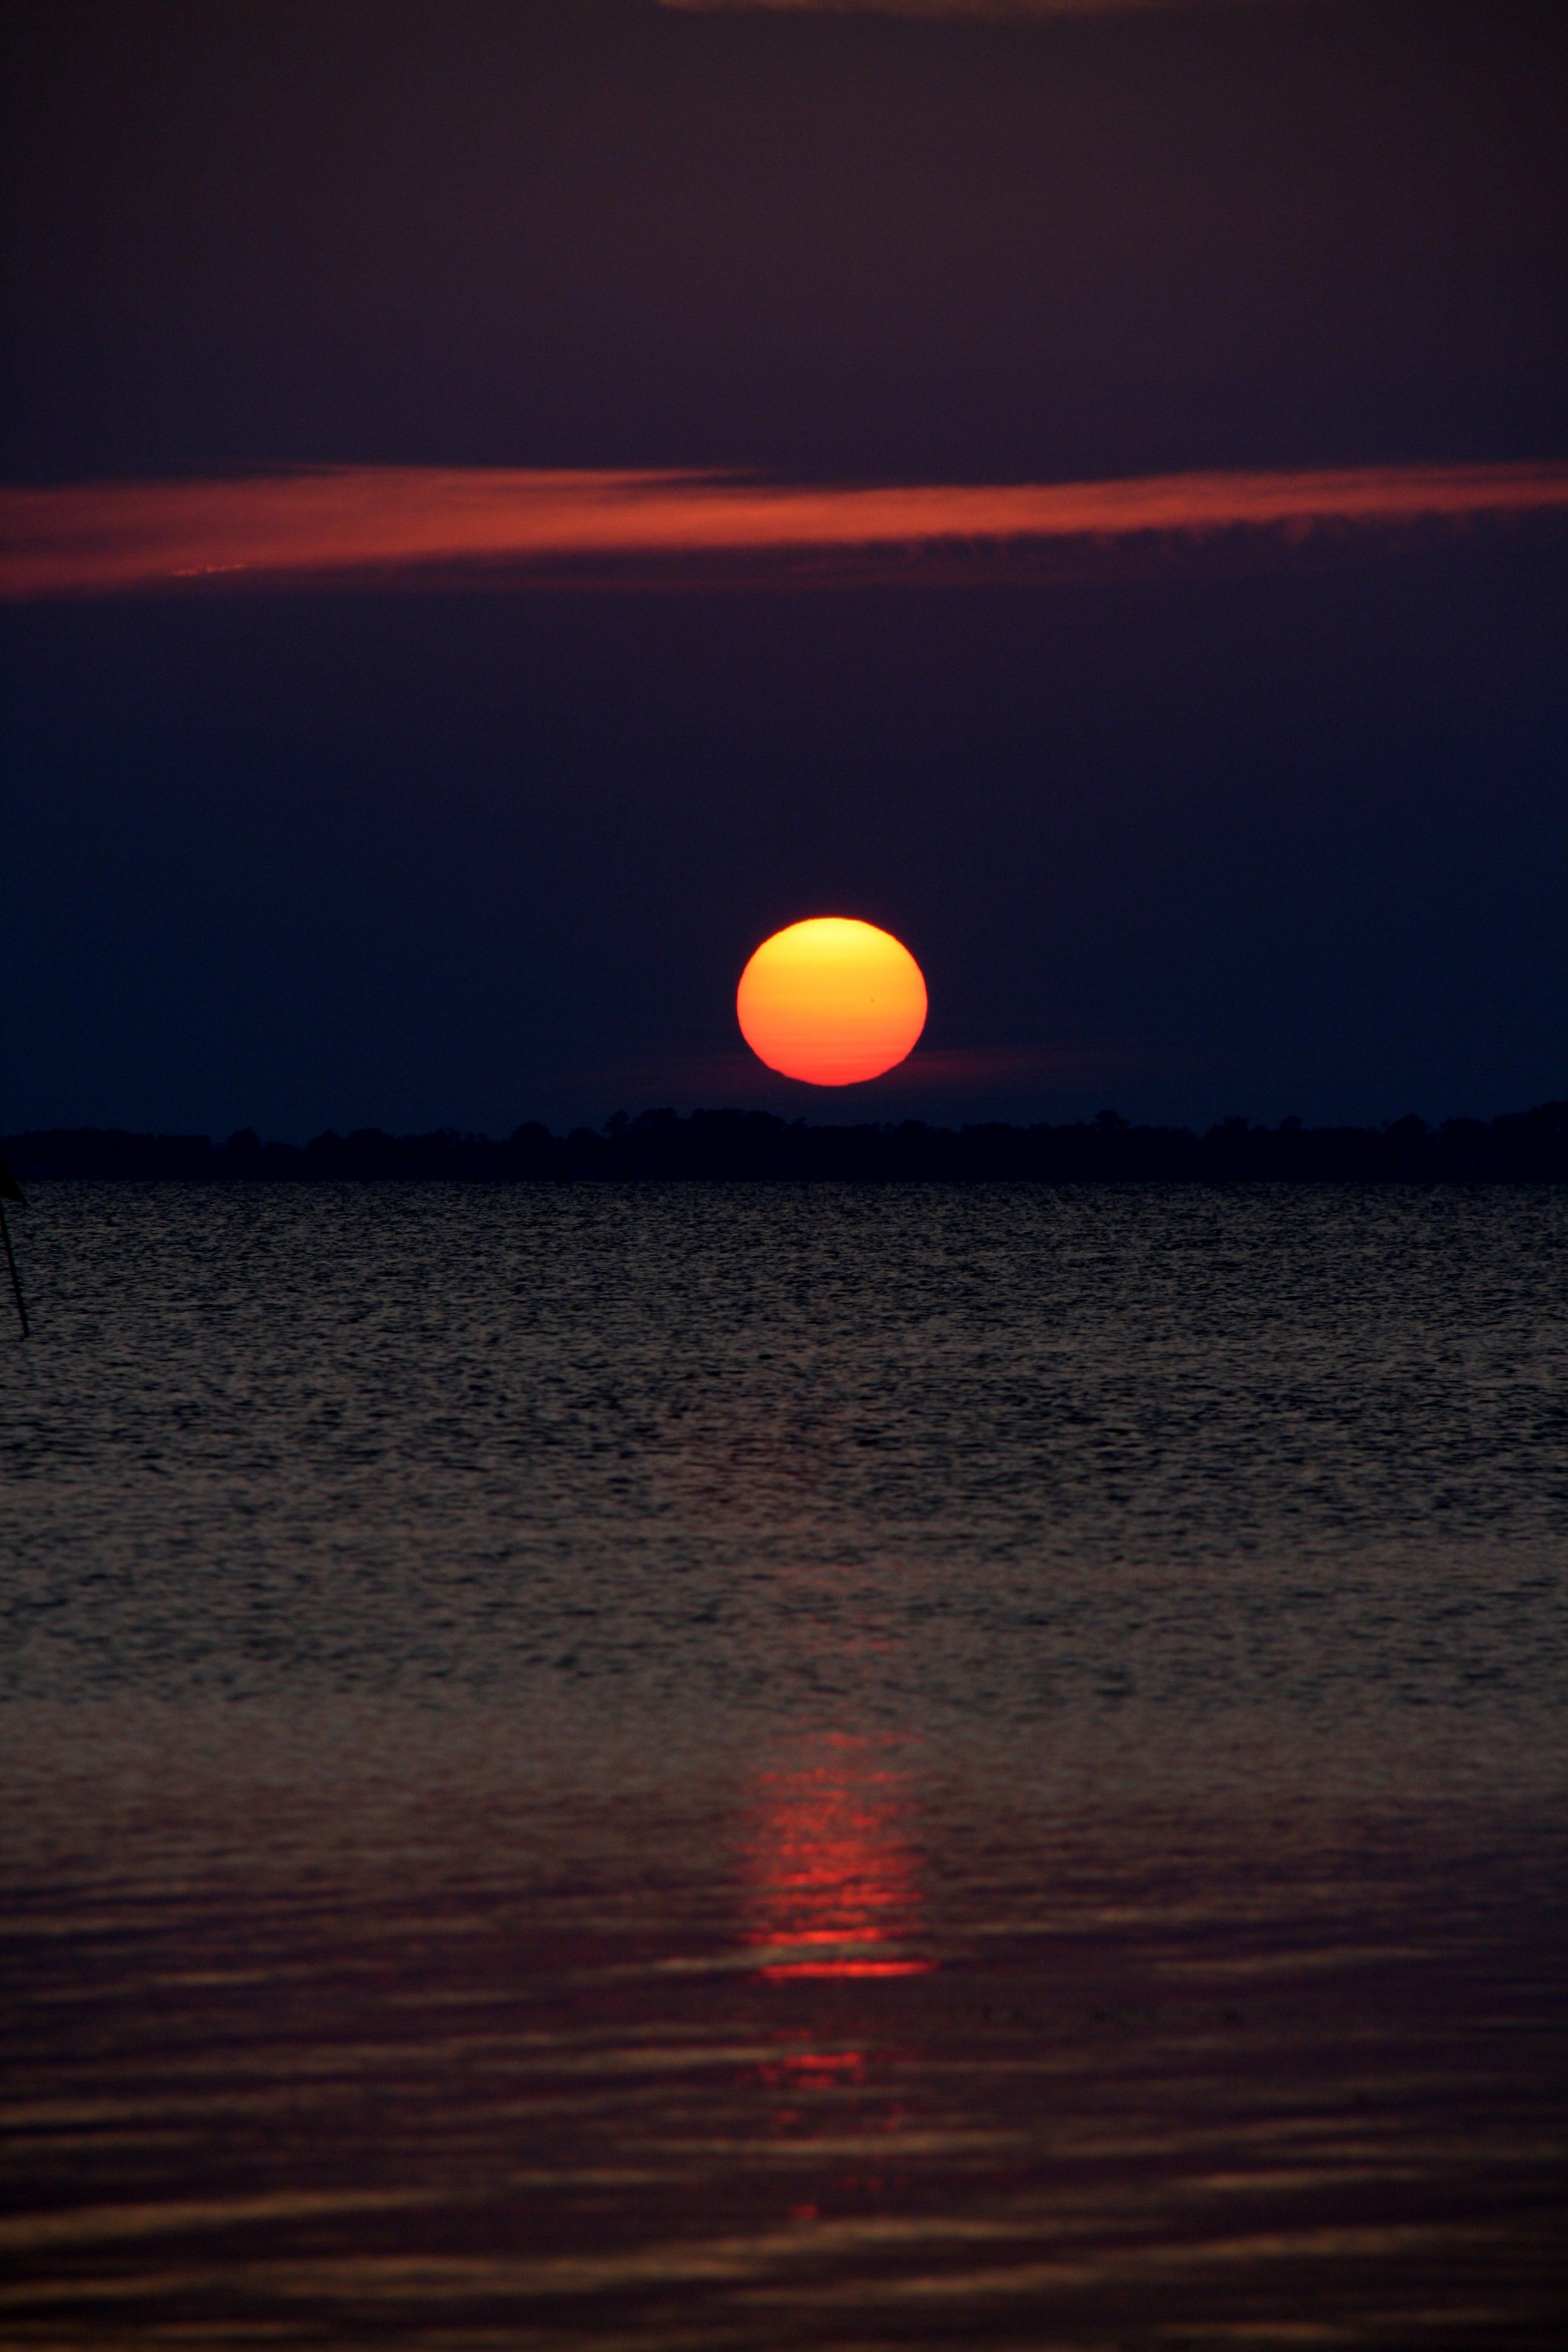 Sunset on the Currituck Sound. Photo by Chet Desai. Entry in the Outer Banks Photo Contest sponsored by Village Realty. www.VillageRealtyOBX.com